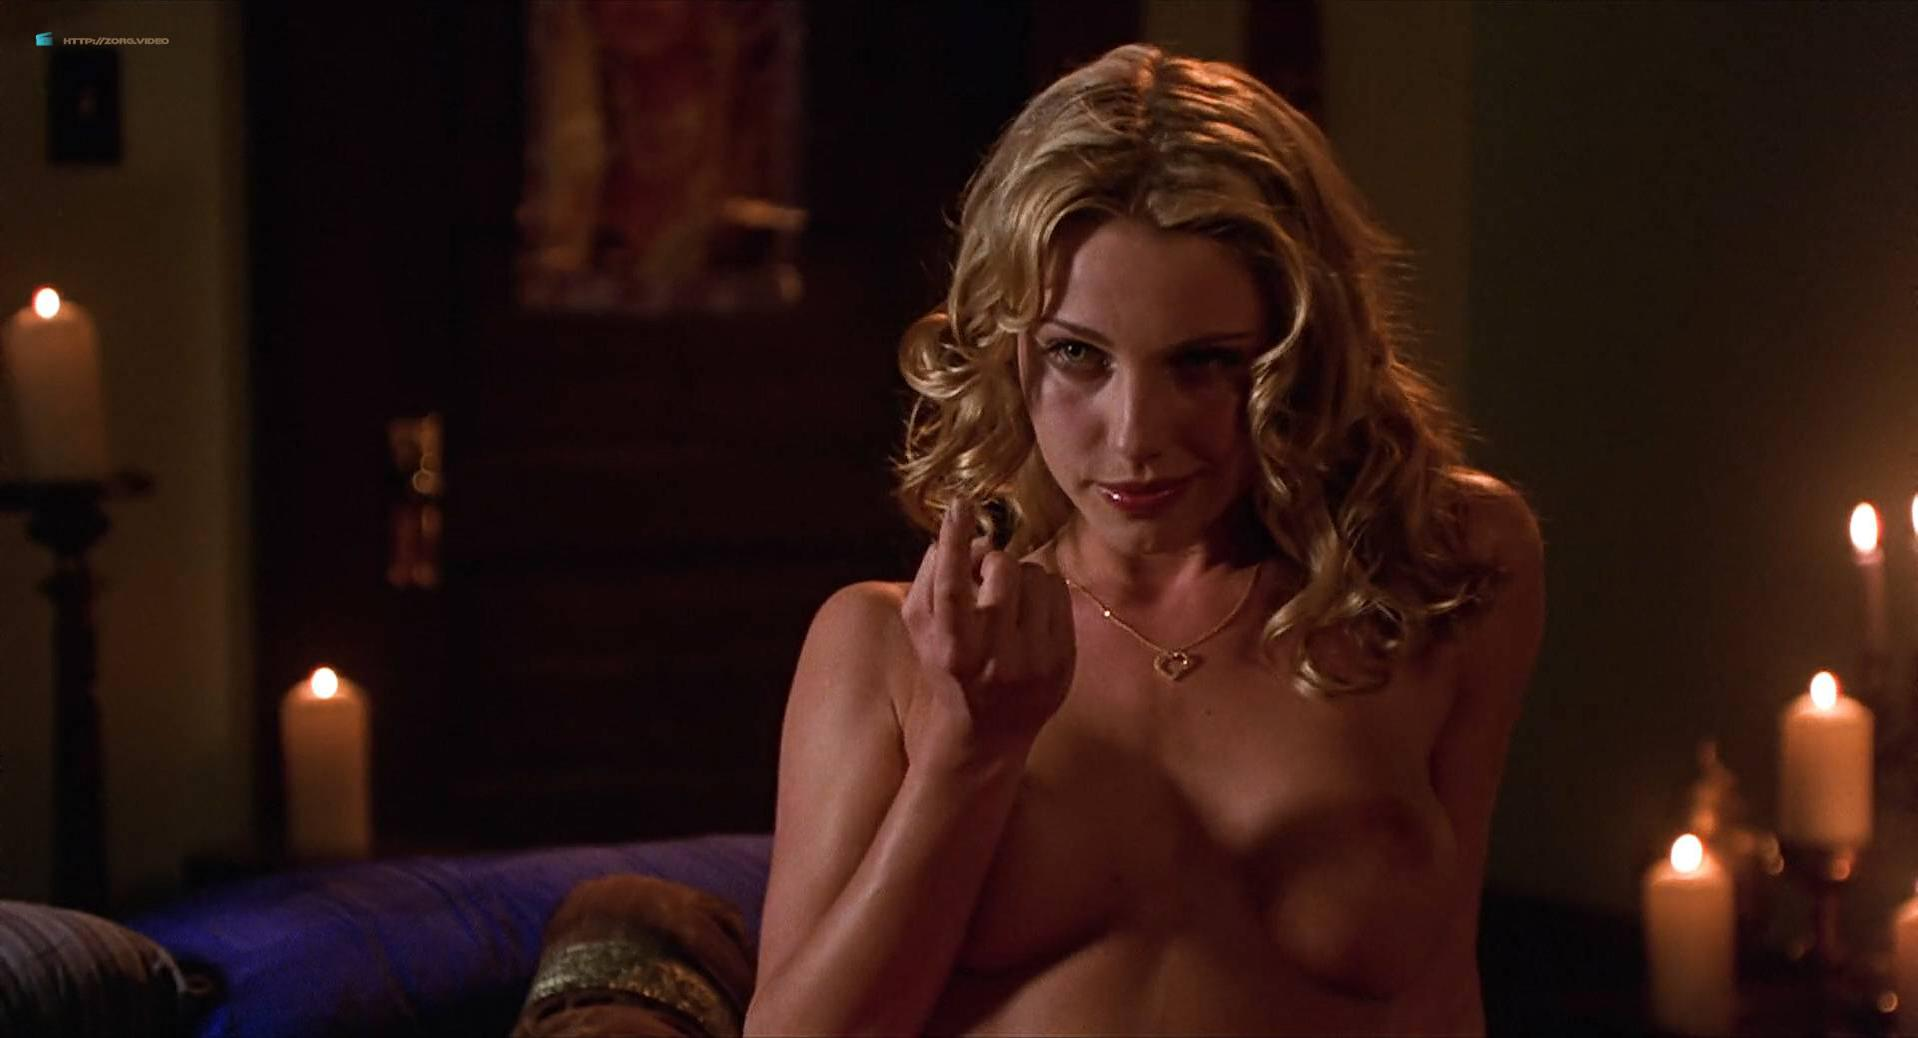 Tara Nude Sex Video 73